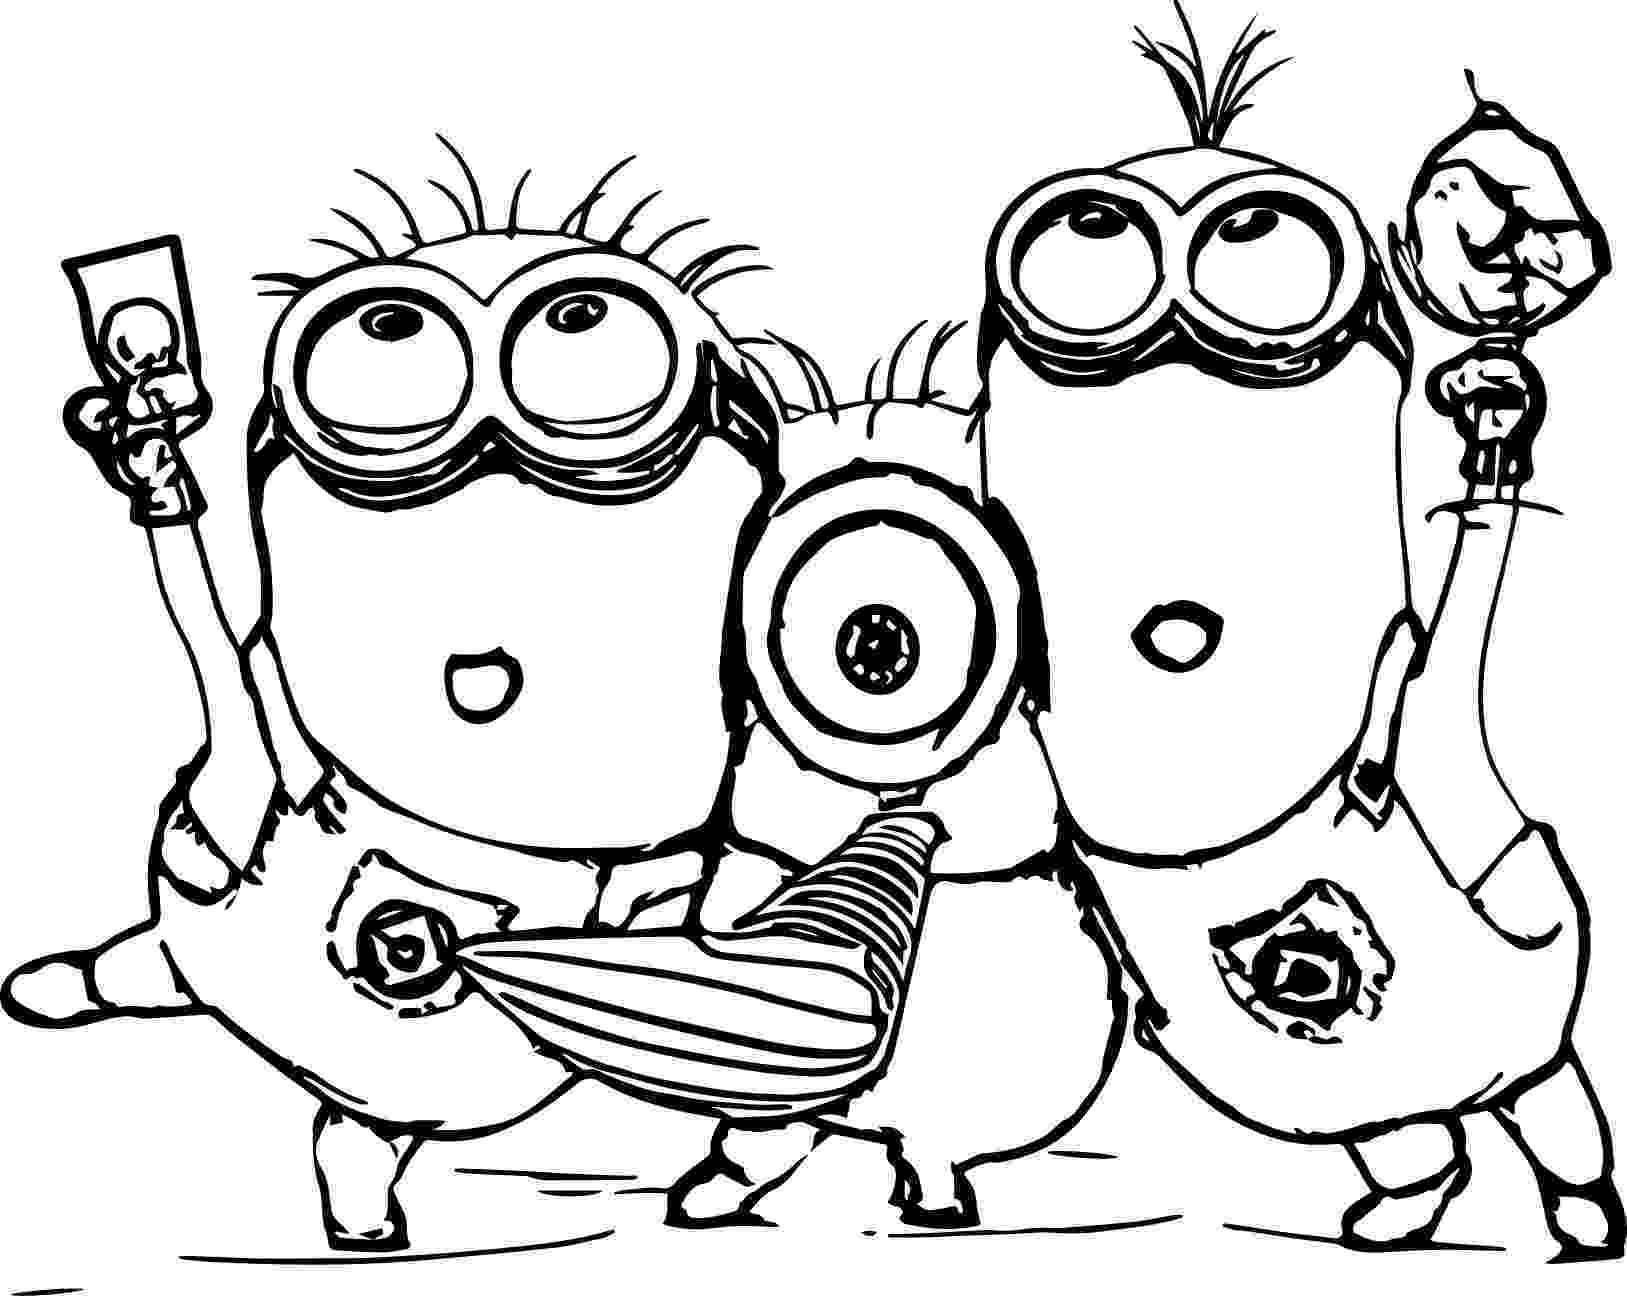 minion pictures to color and print minion coloring pages best coloring pages for kids pictures minion print to and color